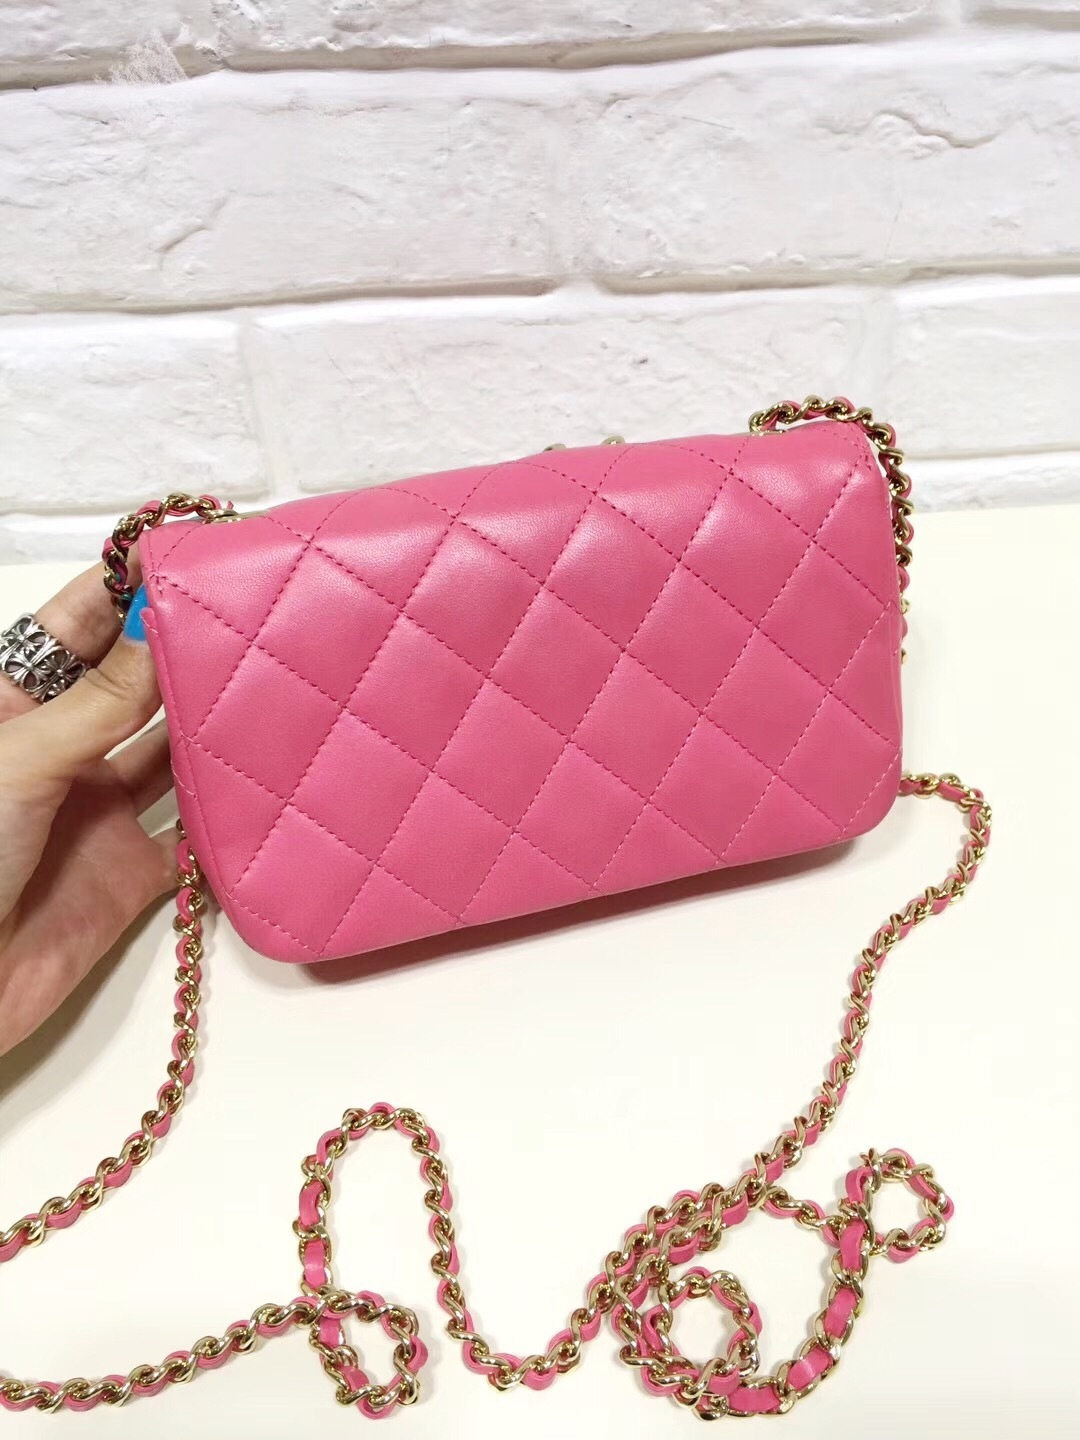 a1cef4c0df09a3 AUTH CHANEL PINK LAMBSKIN EMOJI CRYSTAL PEACE SIGN MINI RECTANGULAR FLAP BAG